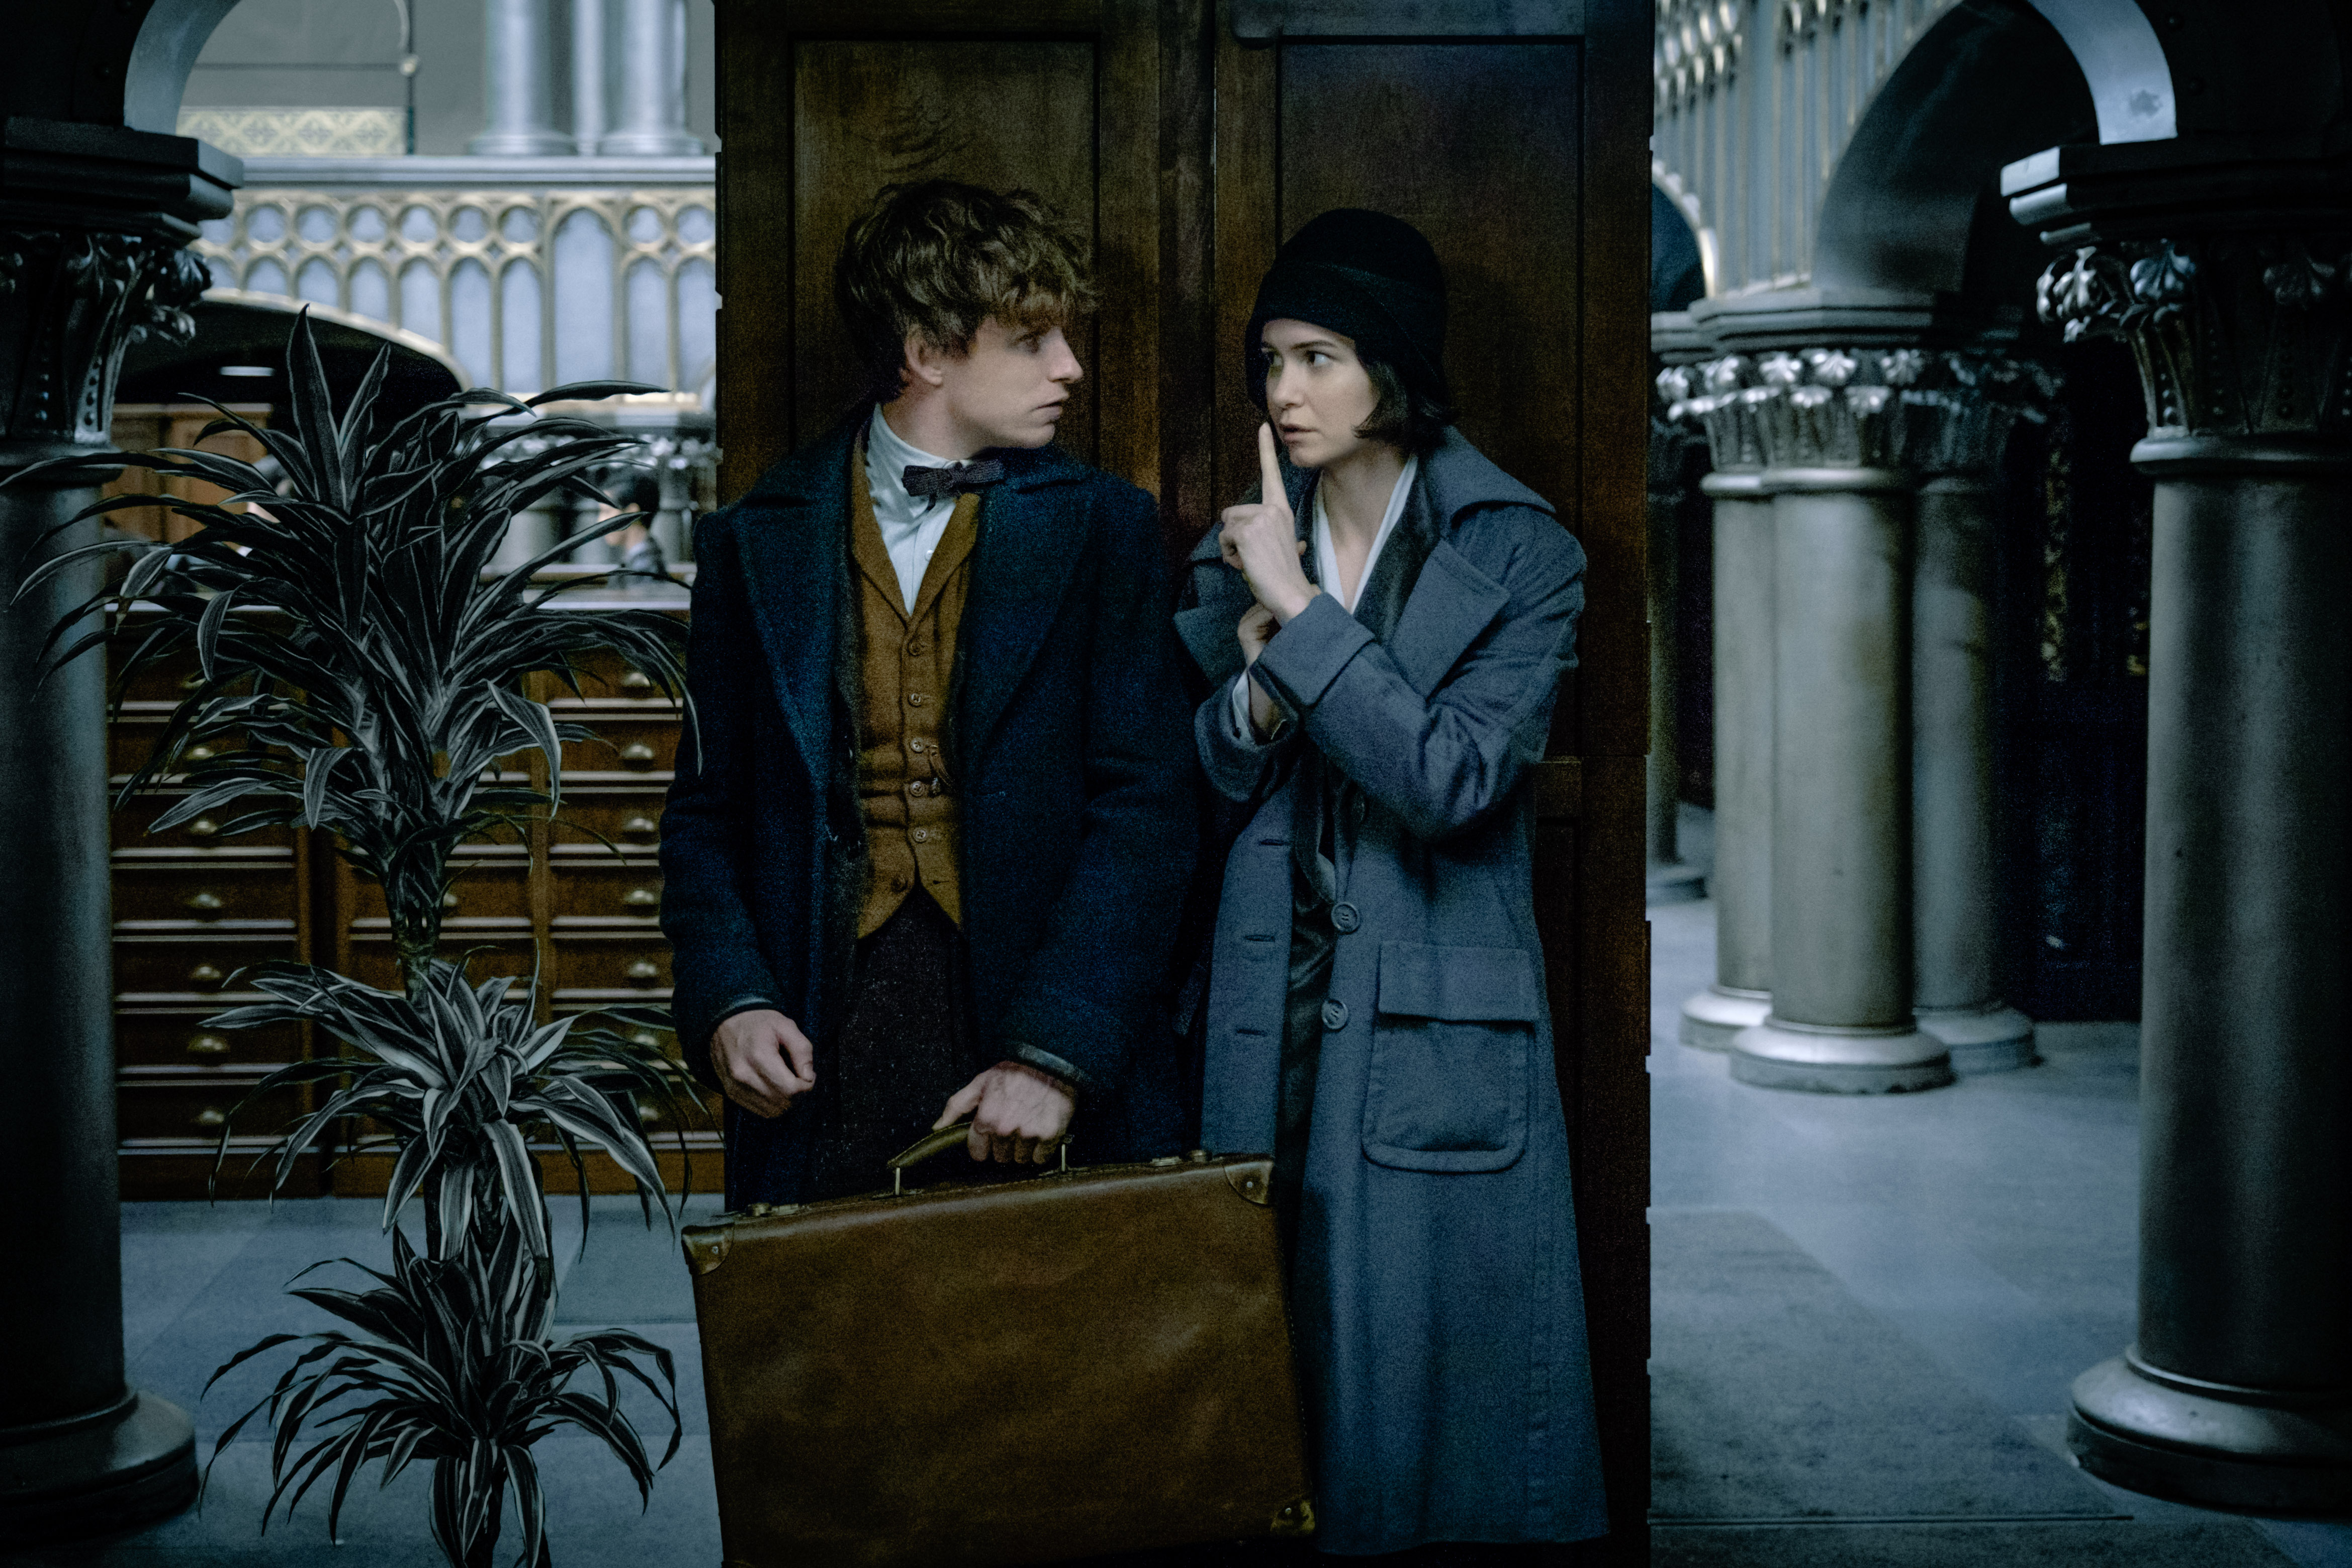 FANTASTIC BEASTS AND WHERE TO FIND THEM (C) Warner Bros.